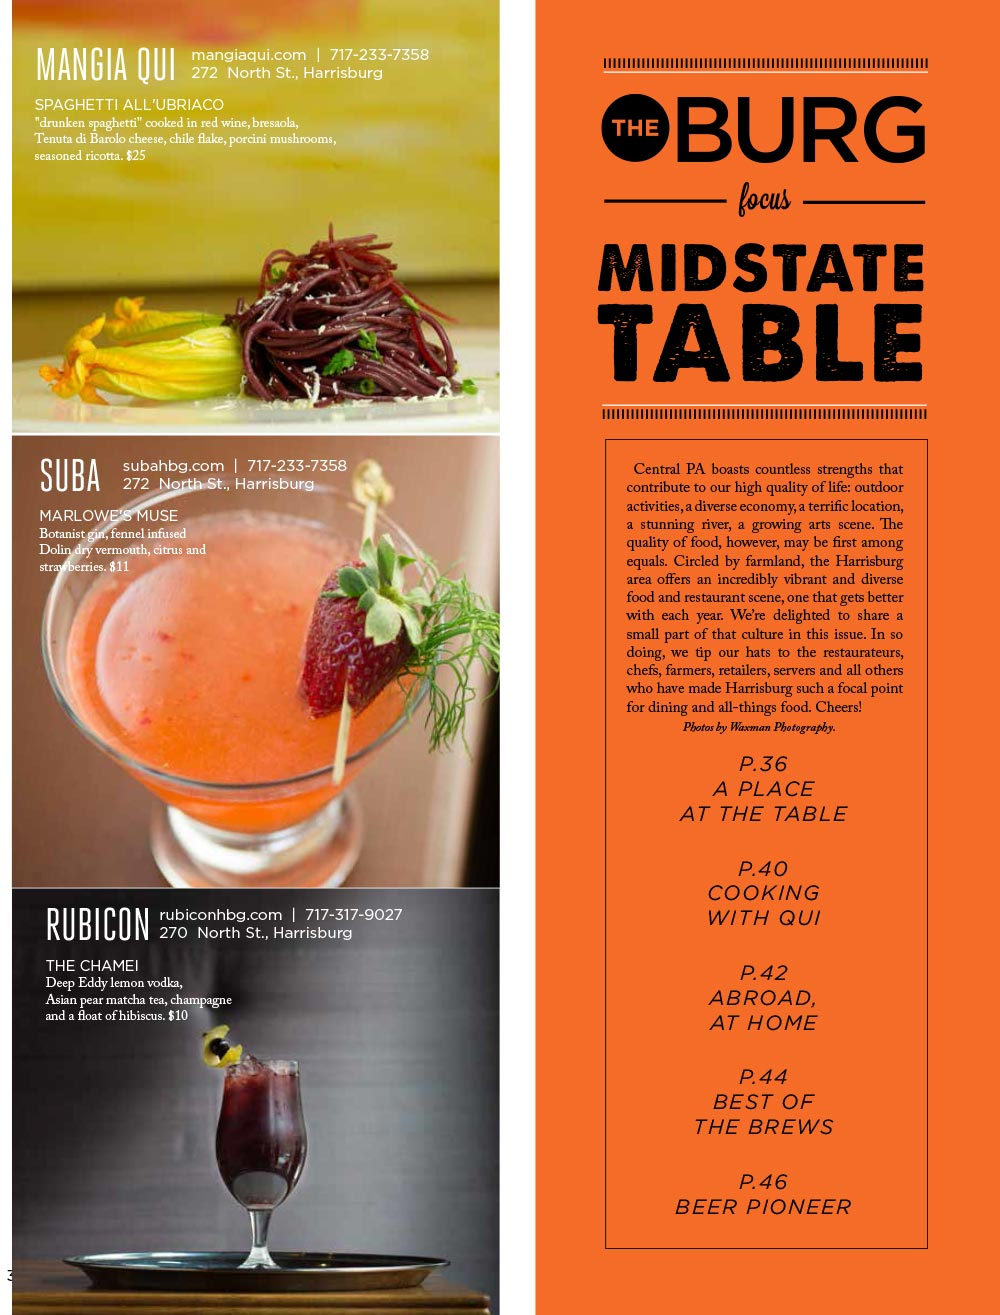 The Burg 2017 Midstate Table Dining Guide